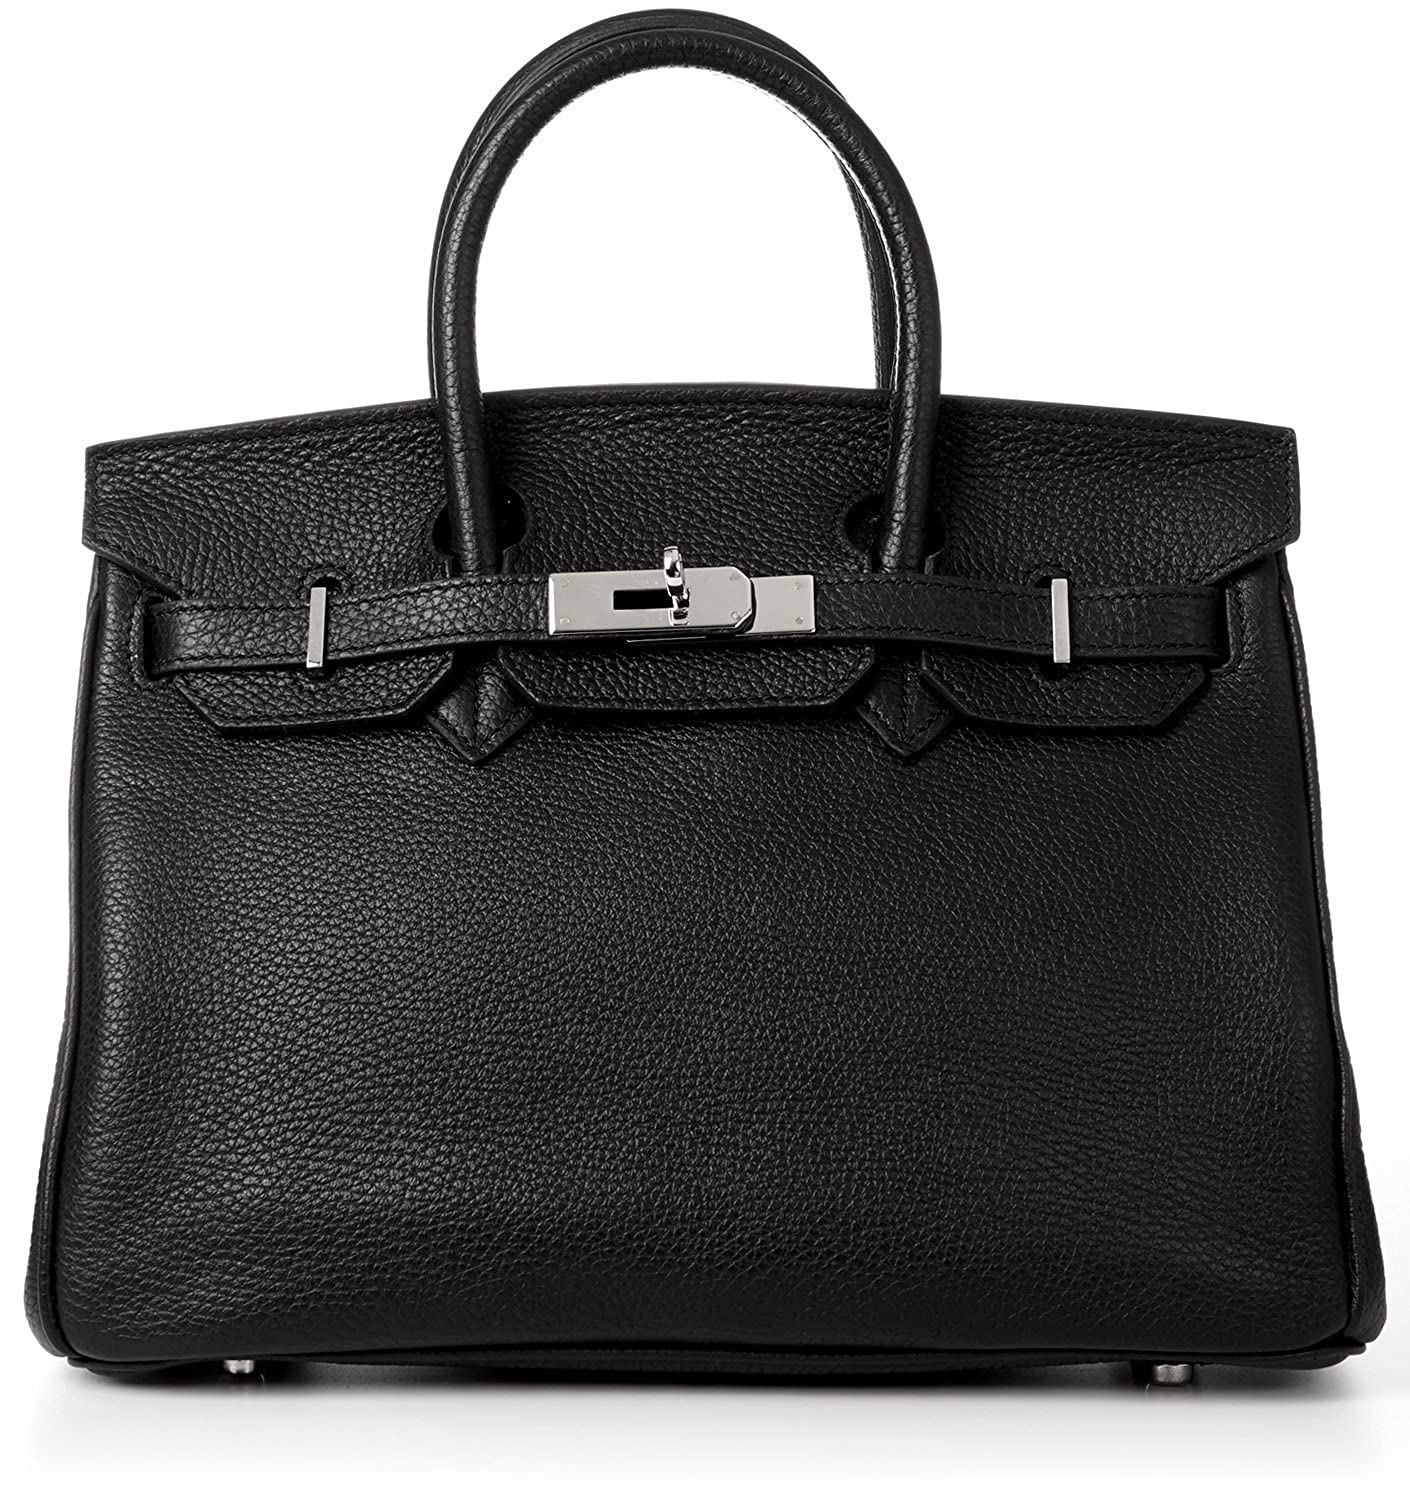 "Designer Handbag Caty 14"" Black Leather Satchel with Silver Hardware & Shoulder Strap Made in Italy"